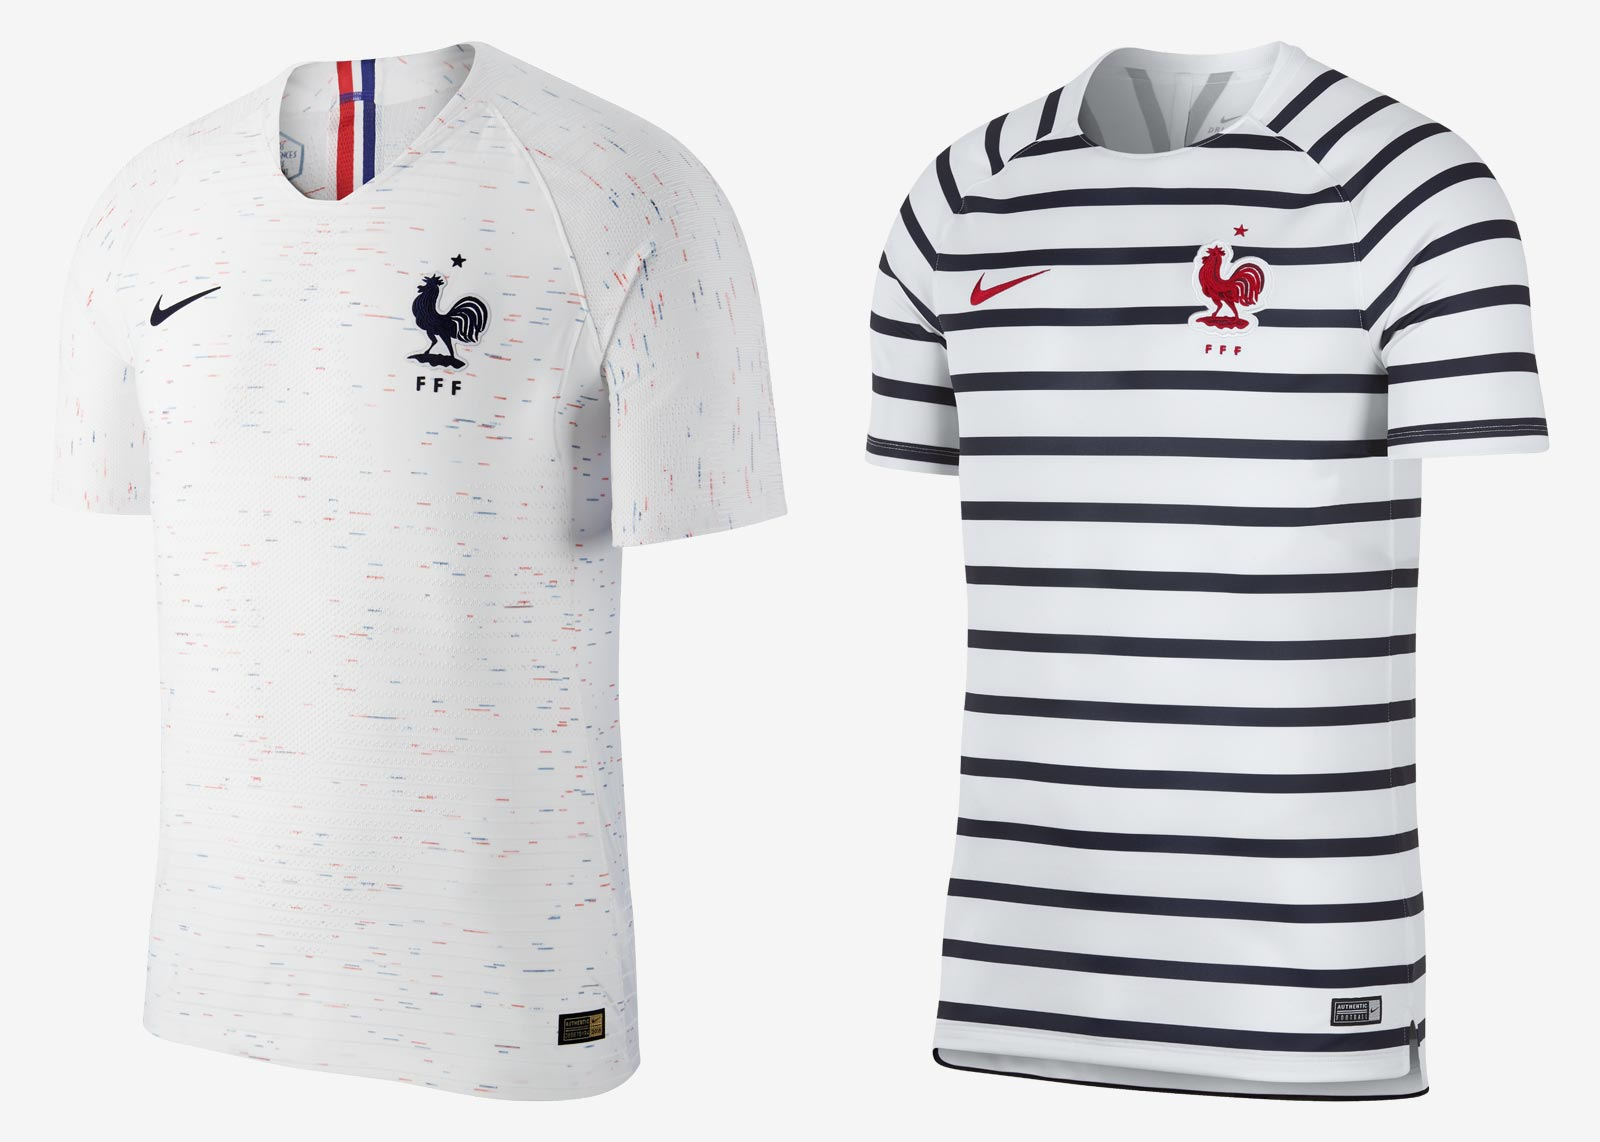 4641cd8dedc What do you think of the France 2018 Away Concept Kit  Do you prefer it  over Nike's actual design  Let us know in the comments below.